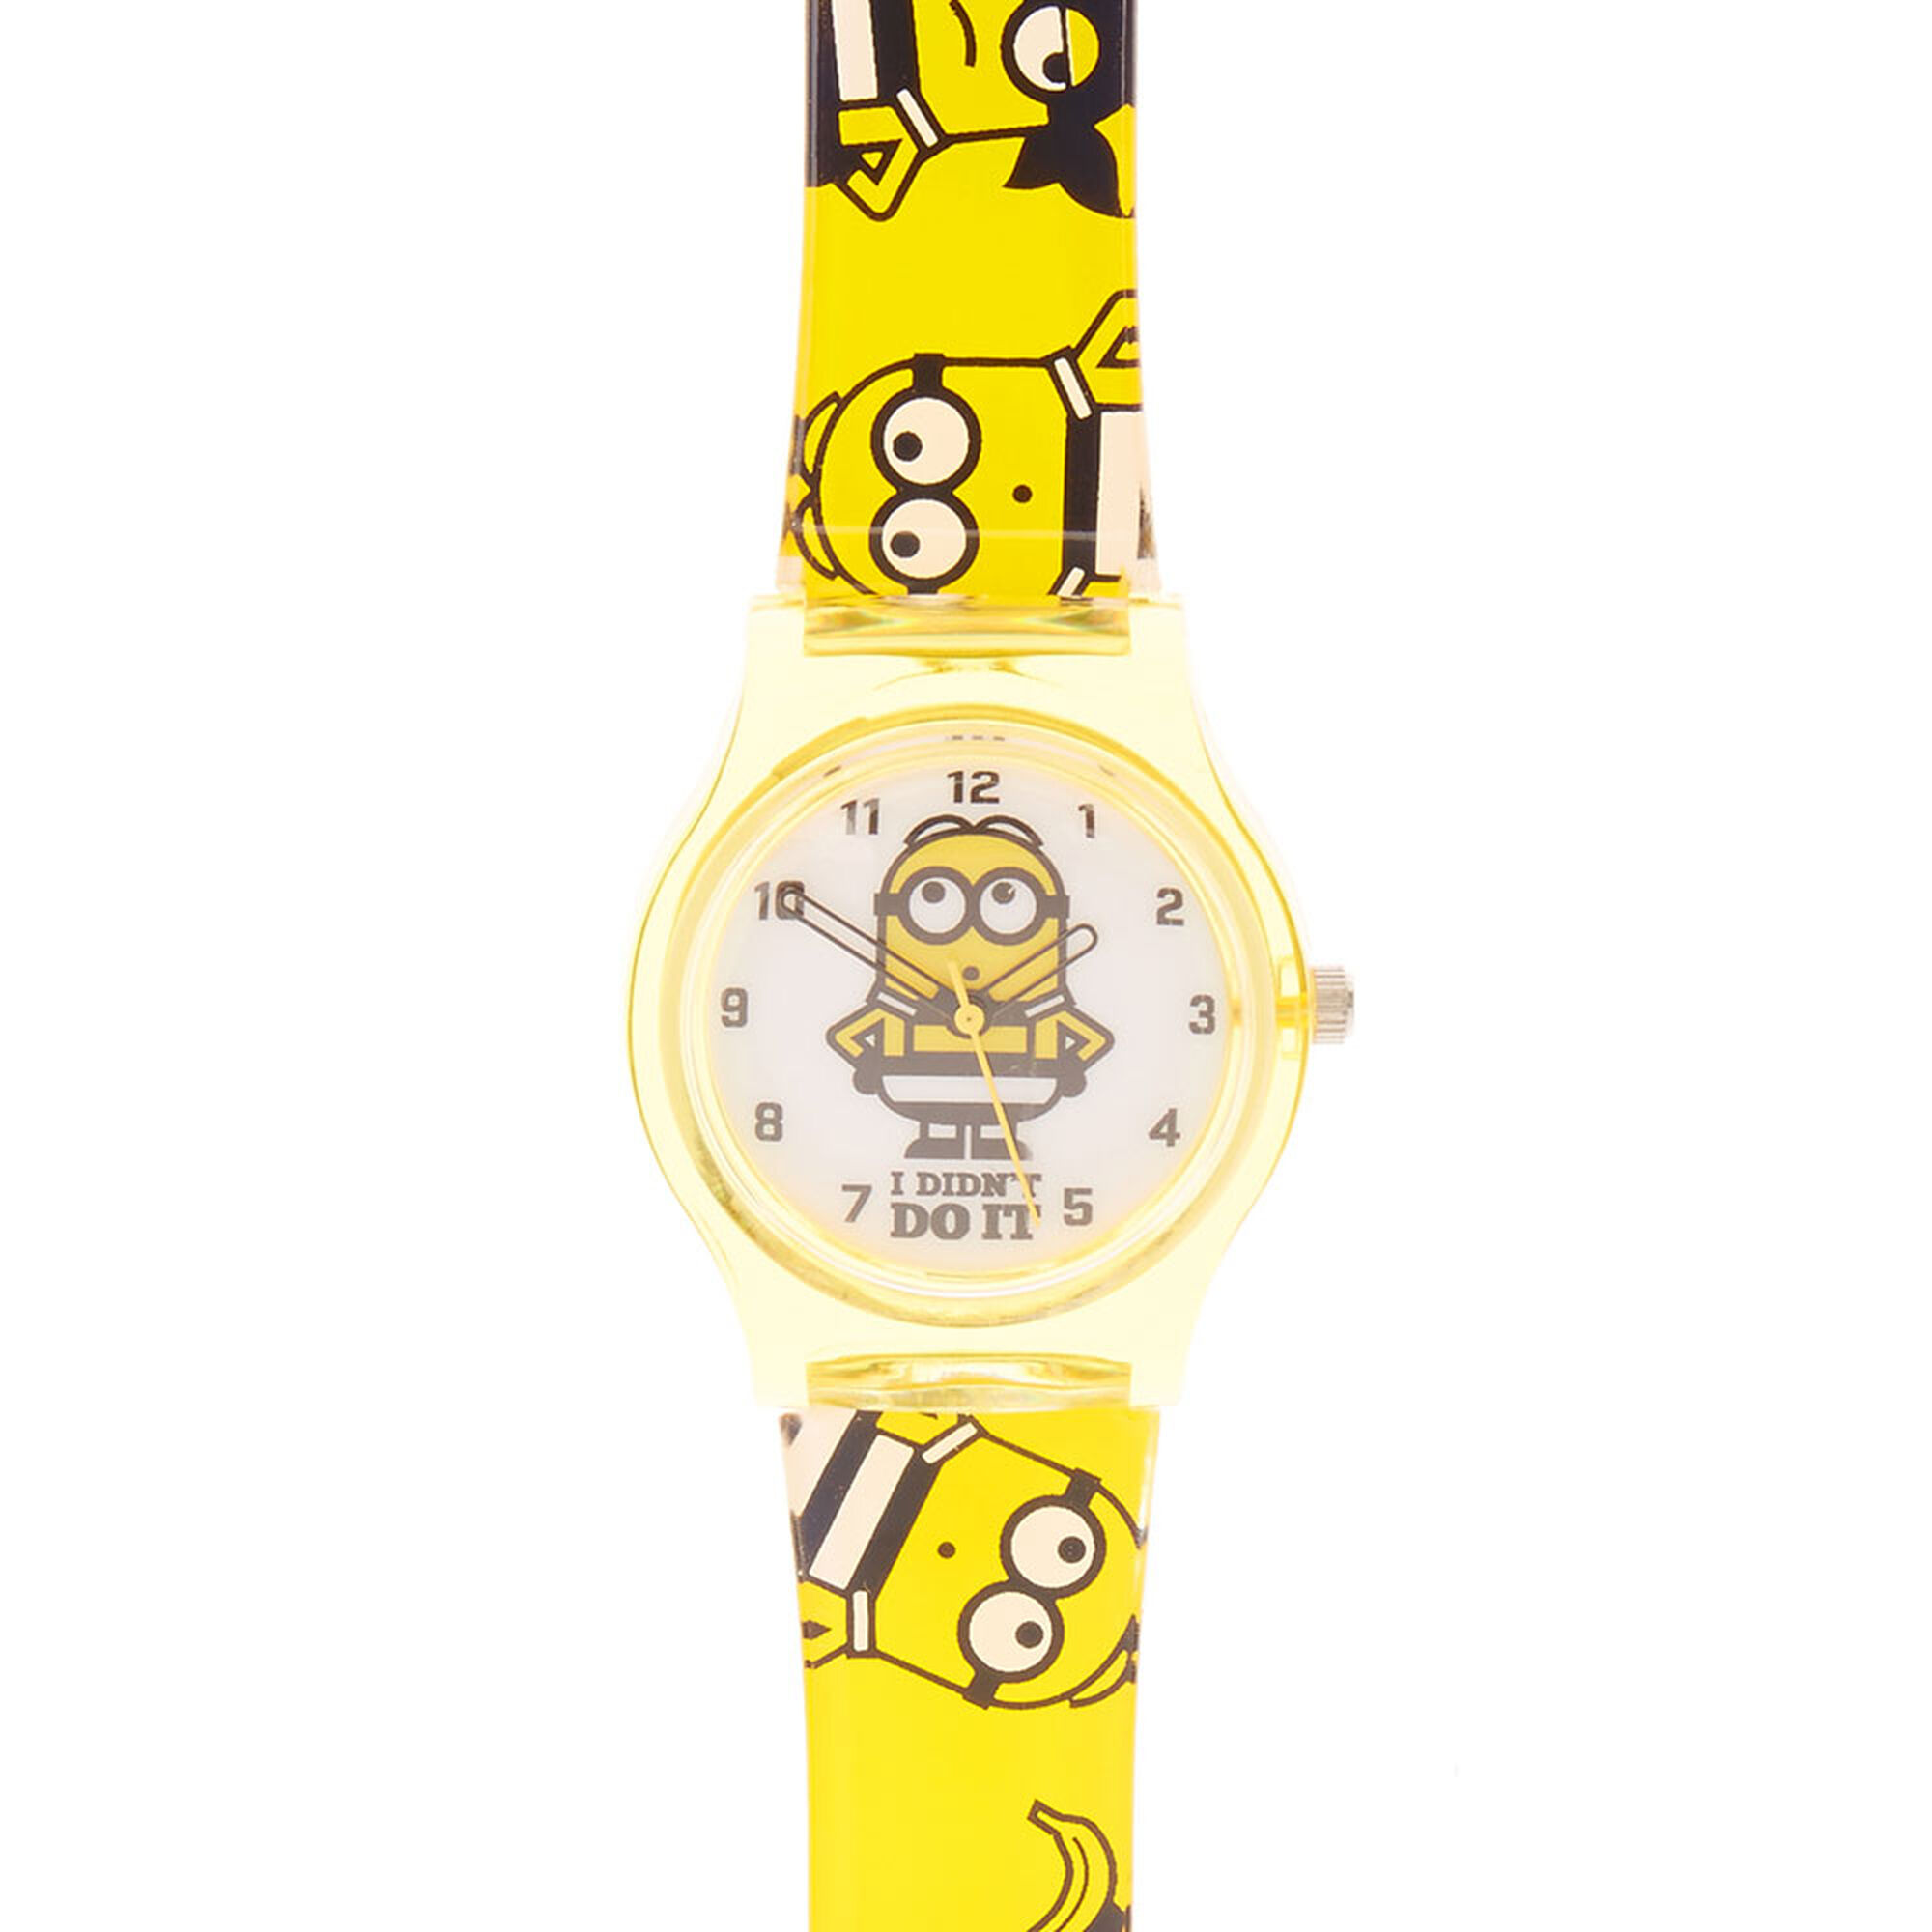 Despicable me 3 minions watch claire 39 s for Despicable watches